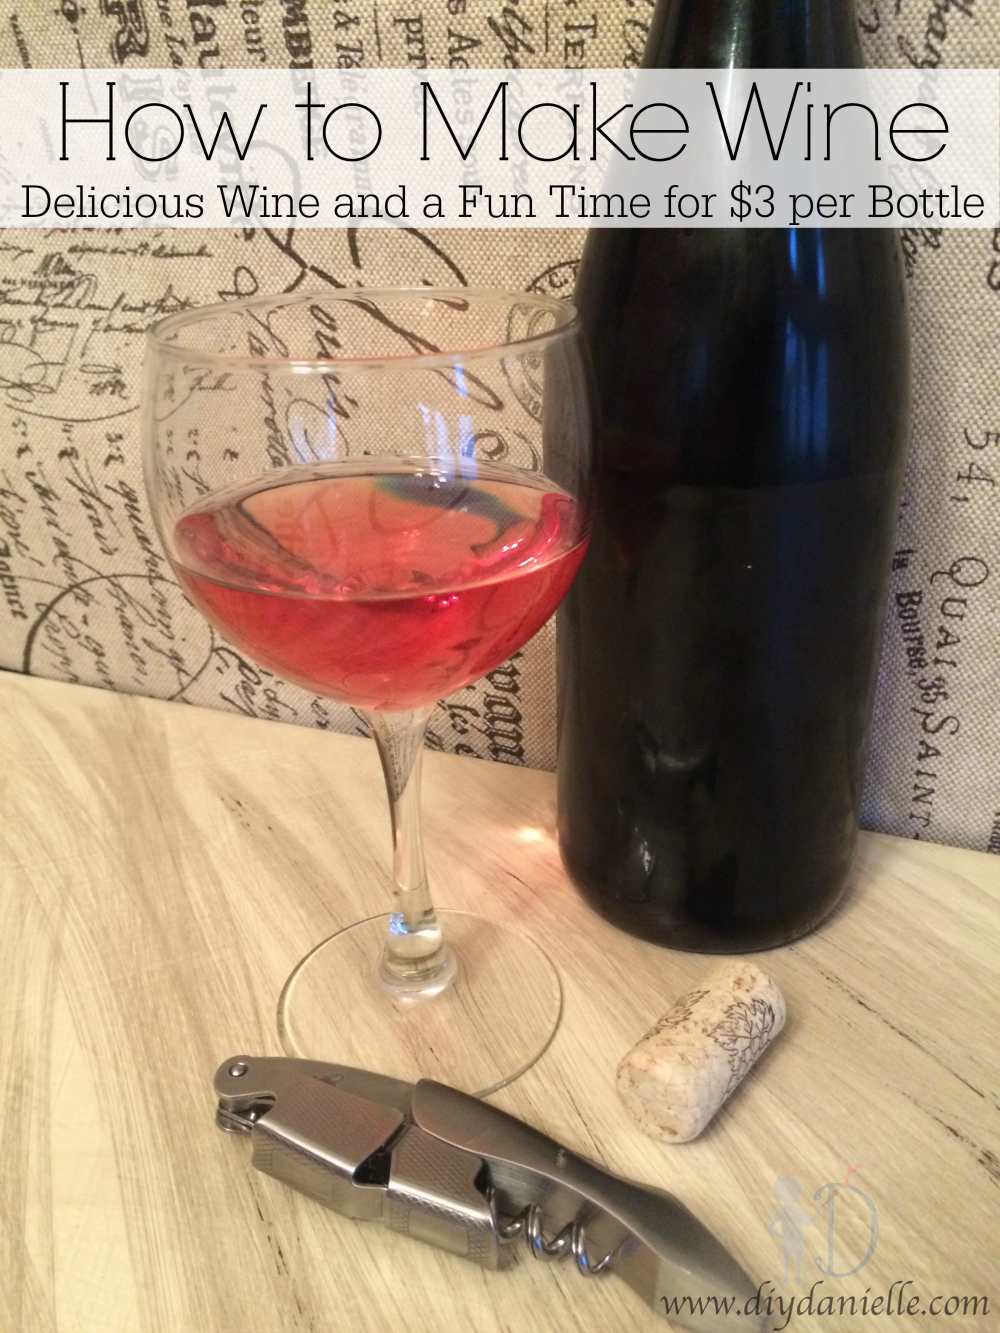 How to Make Wine: Delicious Wine and a Fun Time for $3 per Bottle {Easy Wine Making}